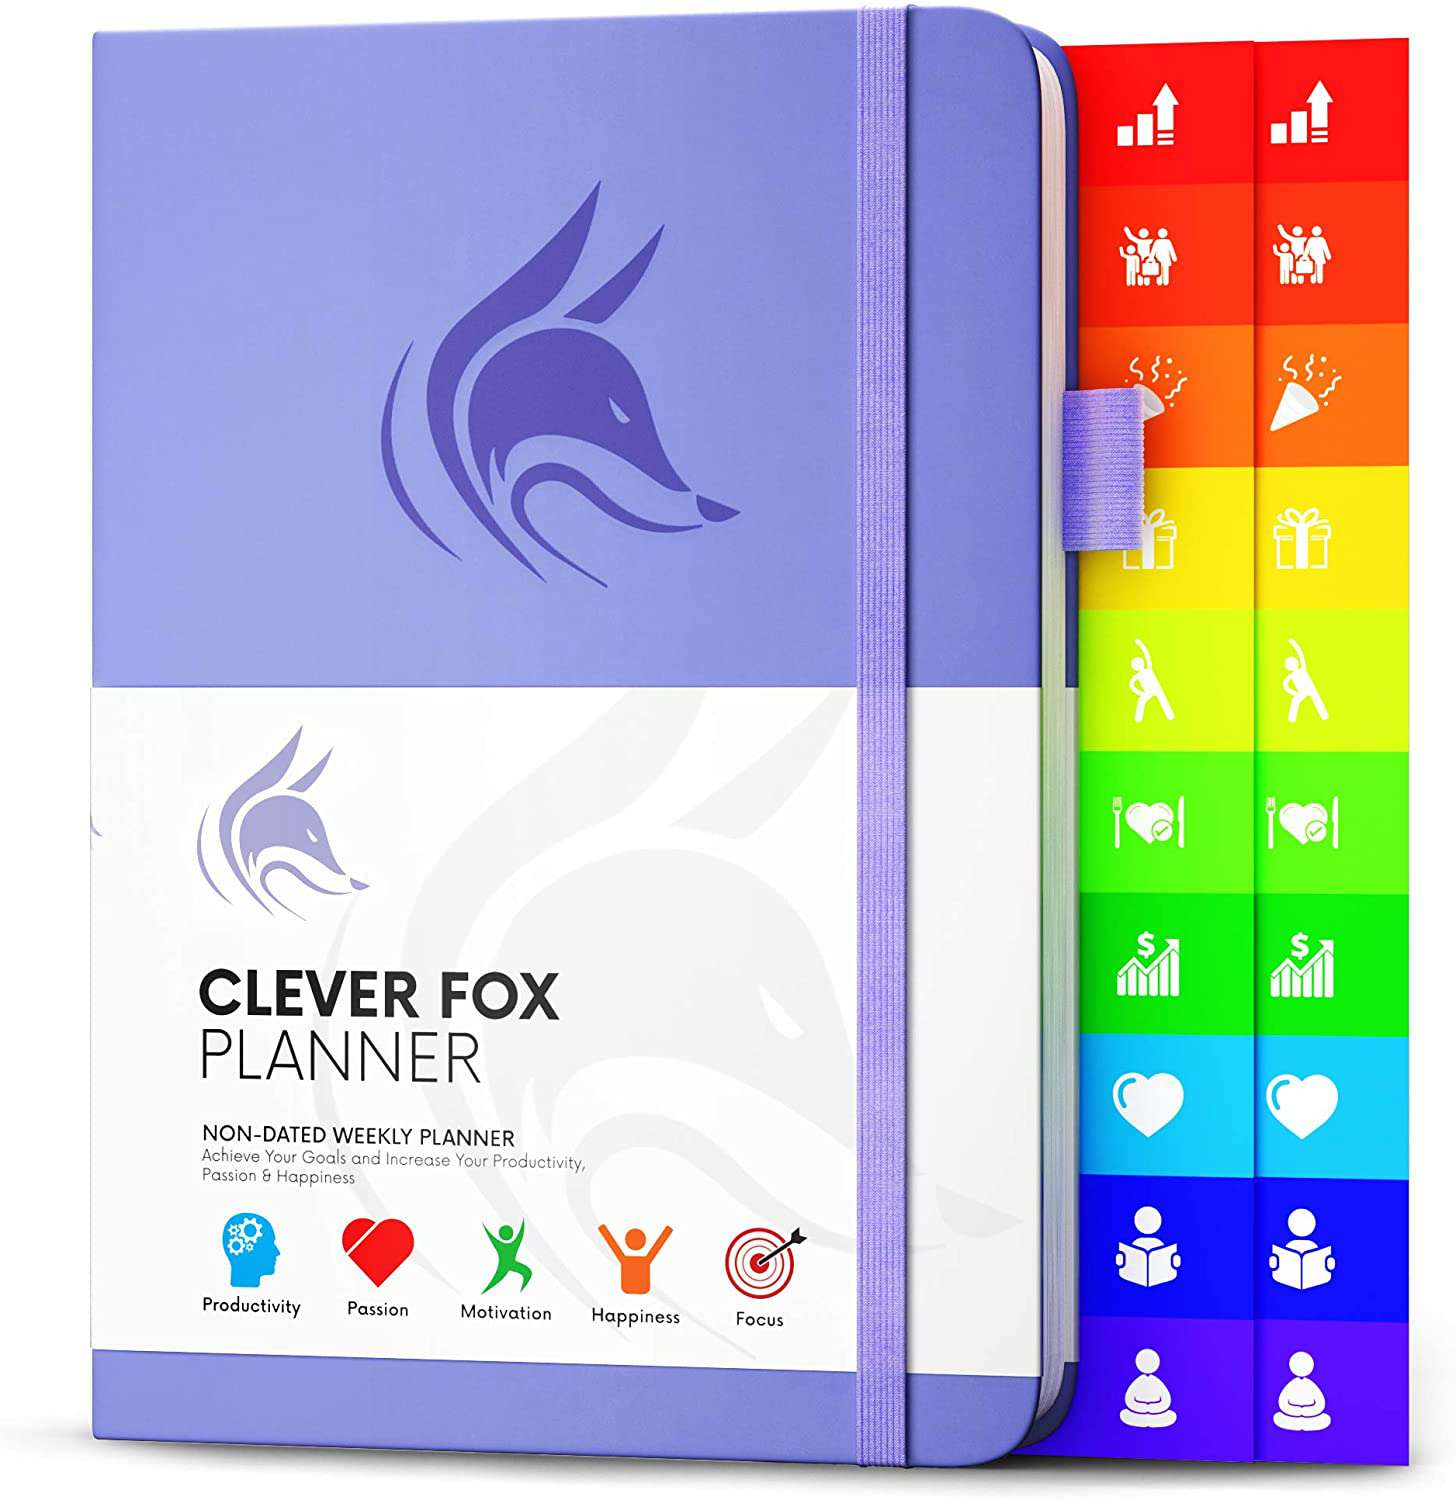 Clever Fox Planner